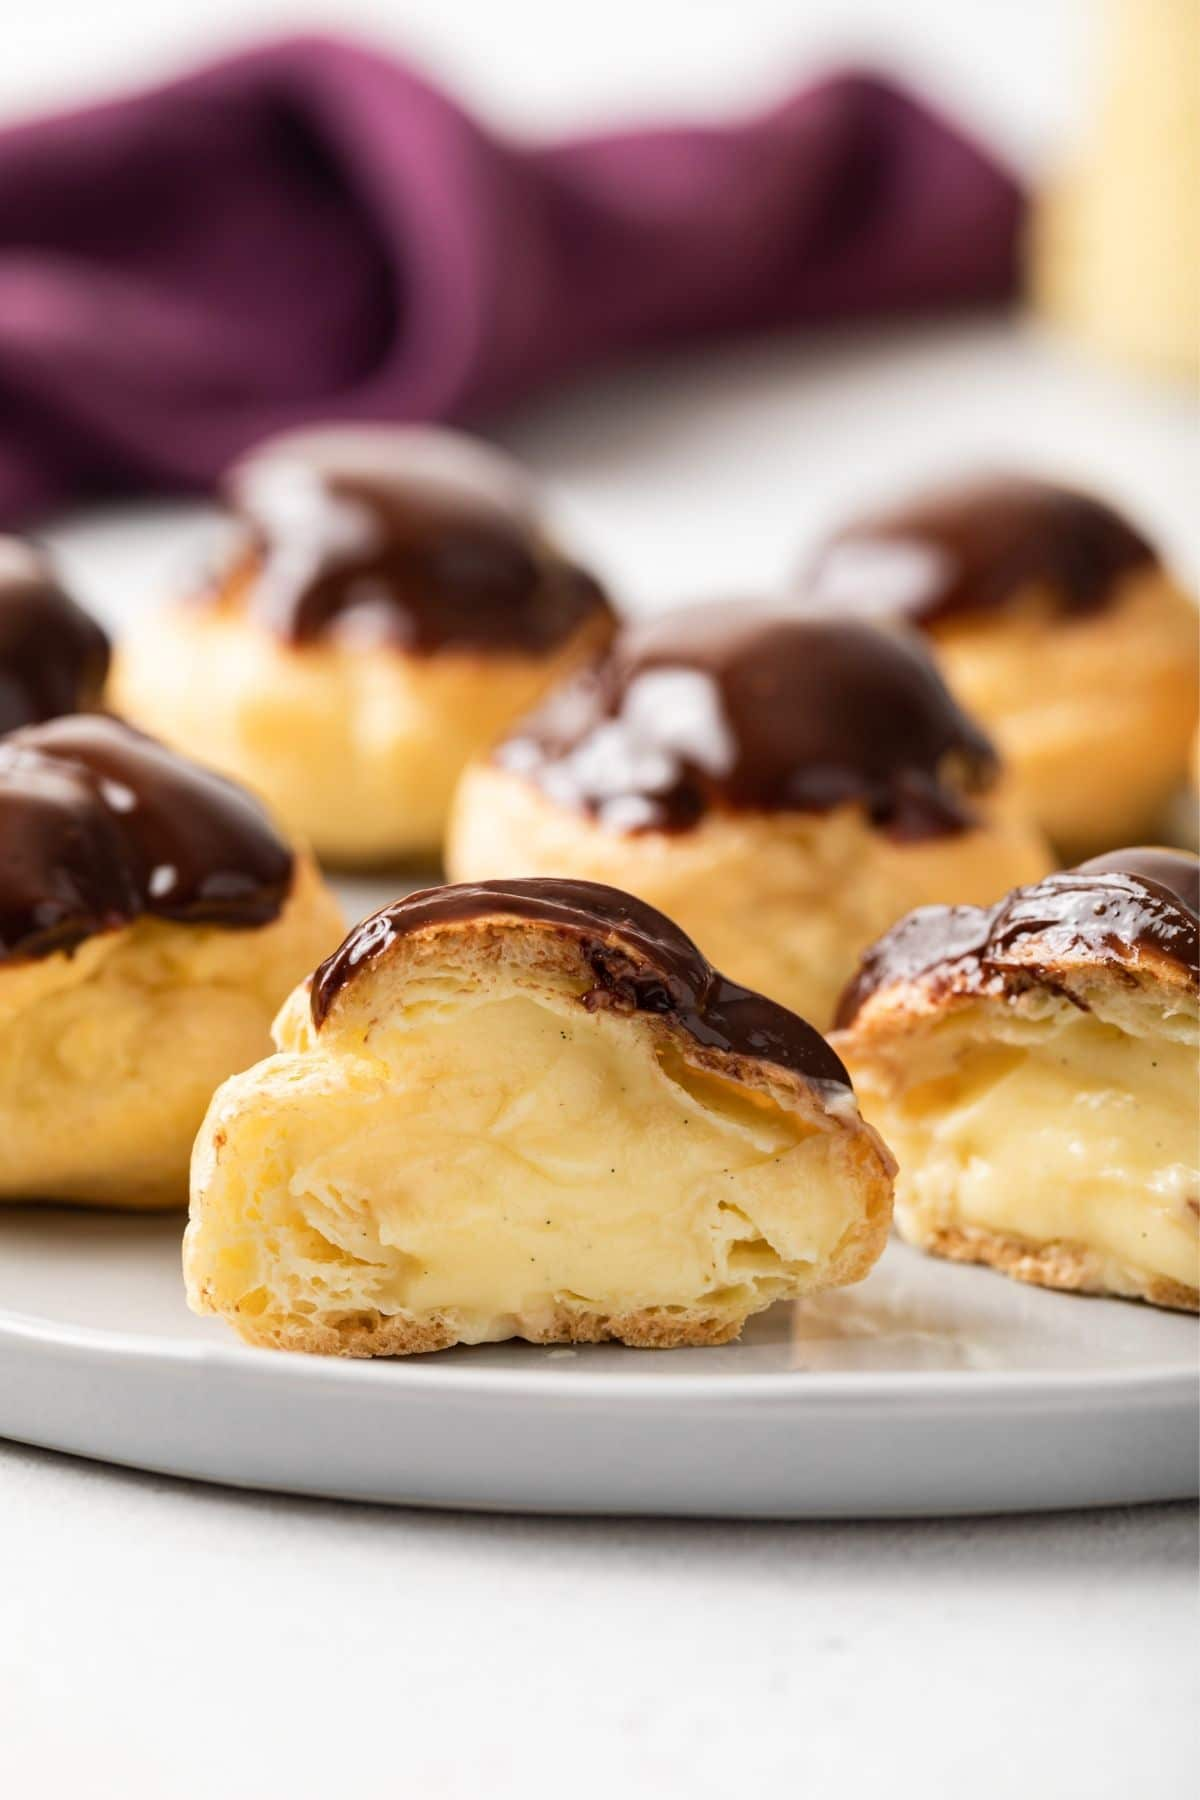 Chocolate glazed profiterole cut open so the filling is visible.